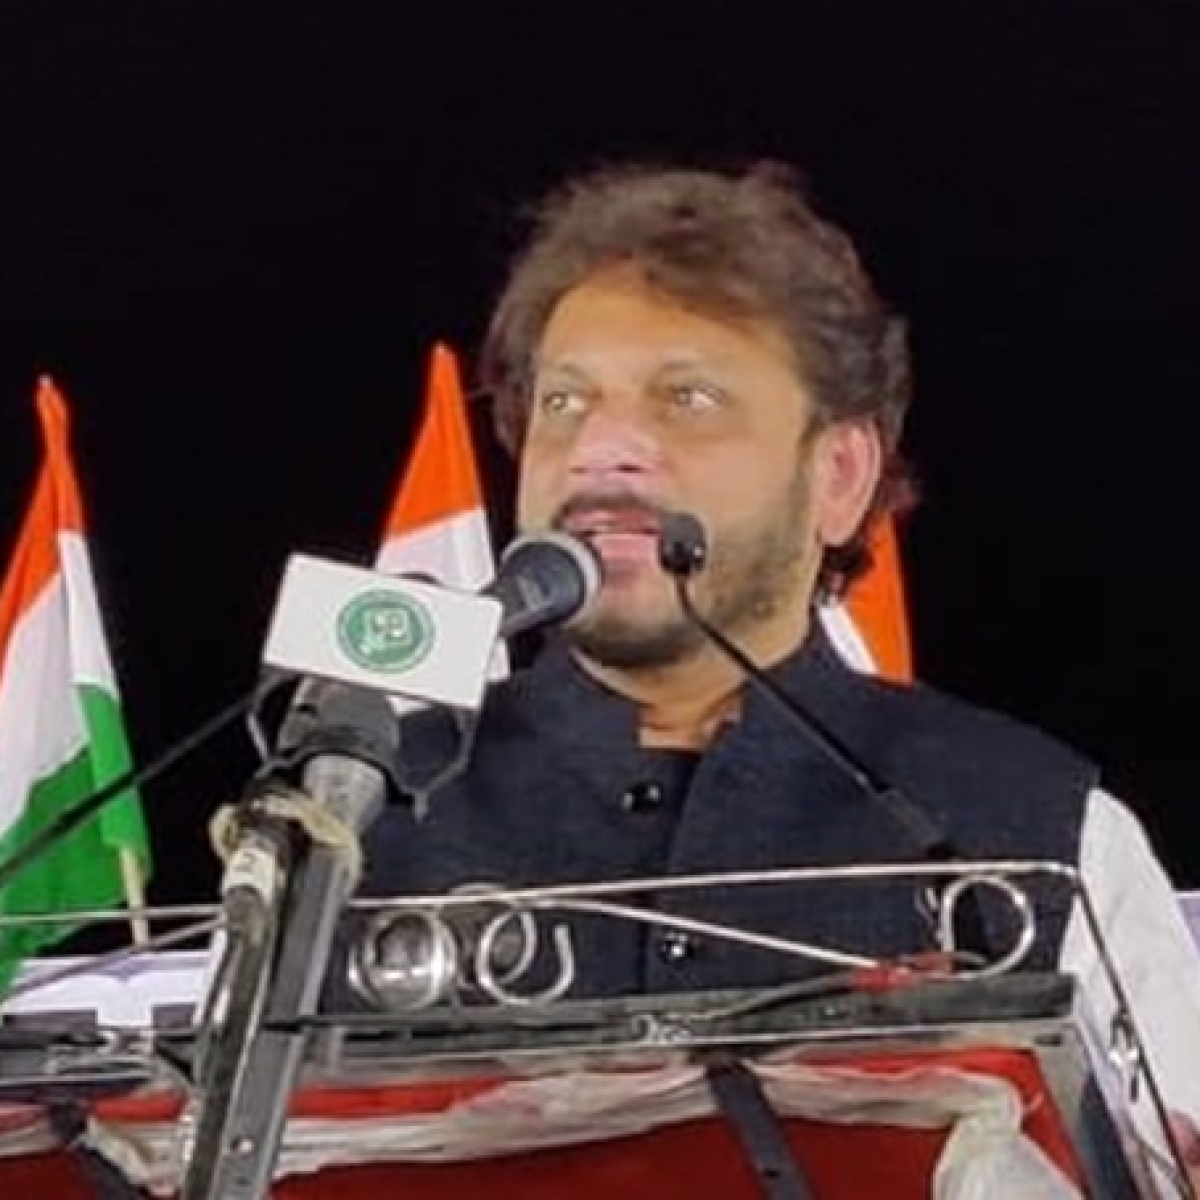 Waris Pathan says 15 crore Muslims can 'dominate' 100 crore Hindus, gets panned